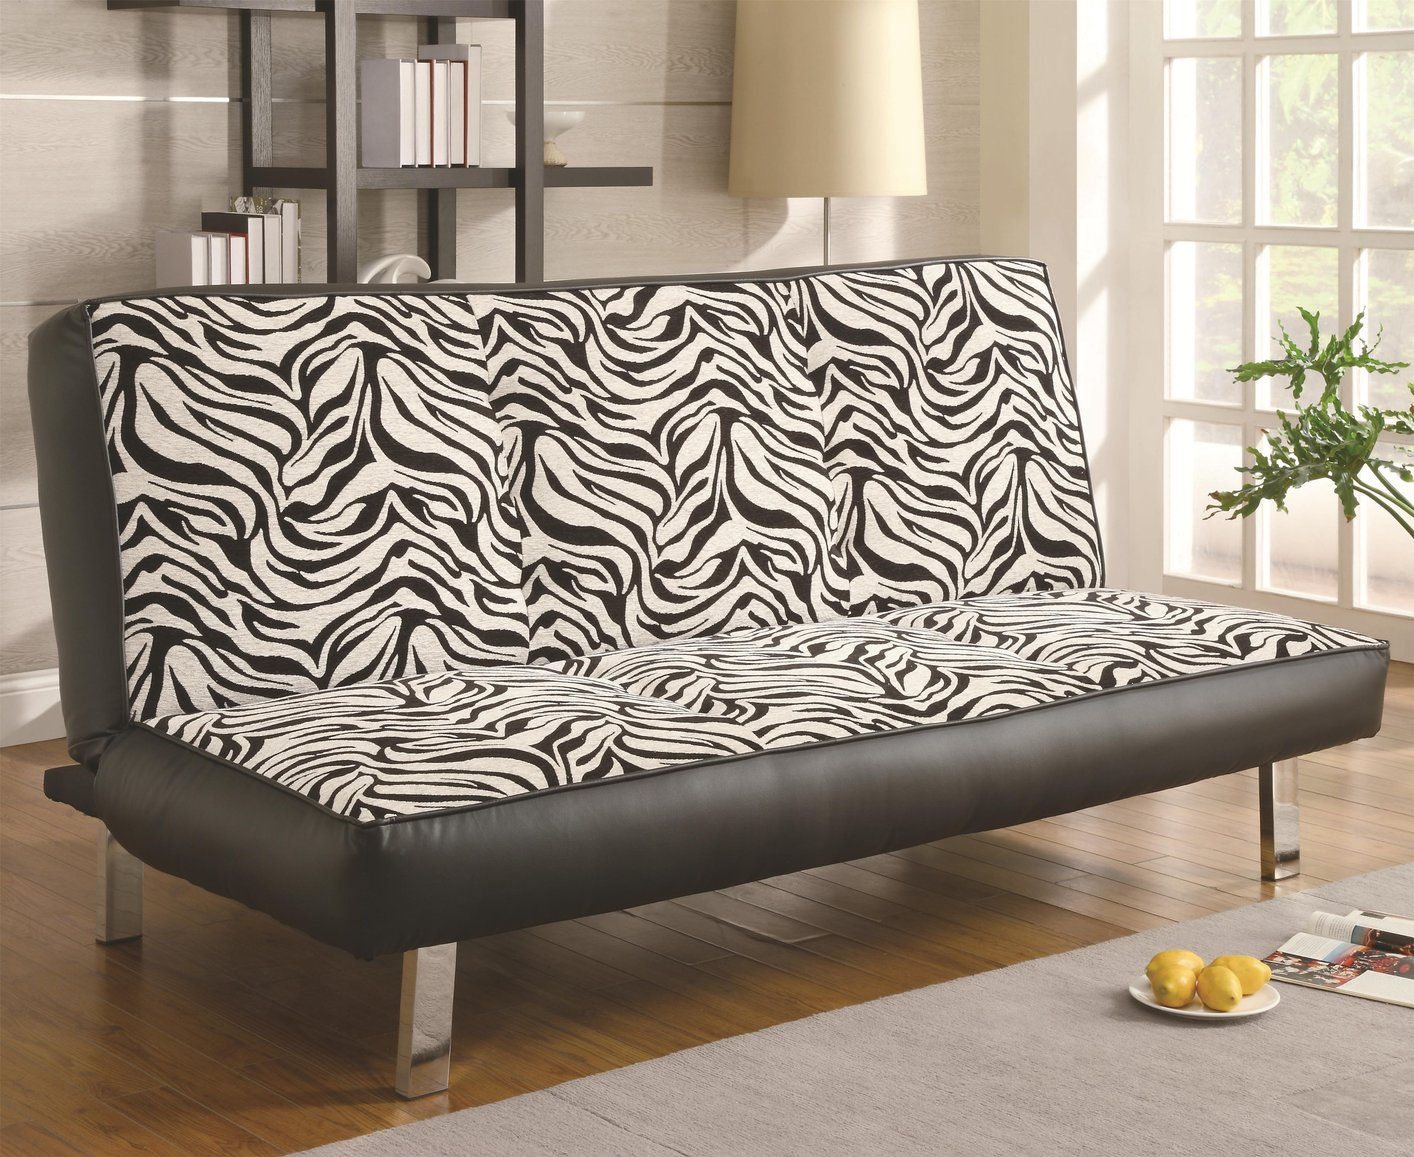 Finest Fl Print Fabric Sofas All Information Sofa Desain Ideas With Printed